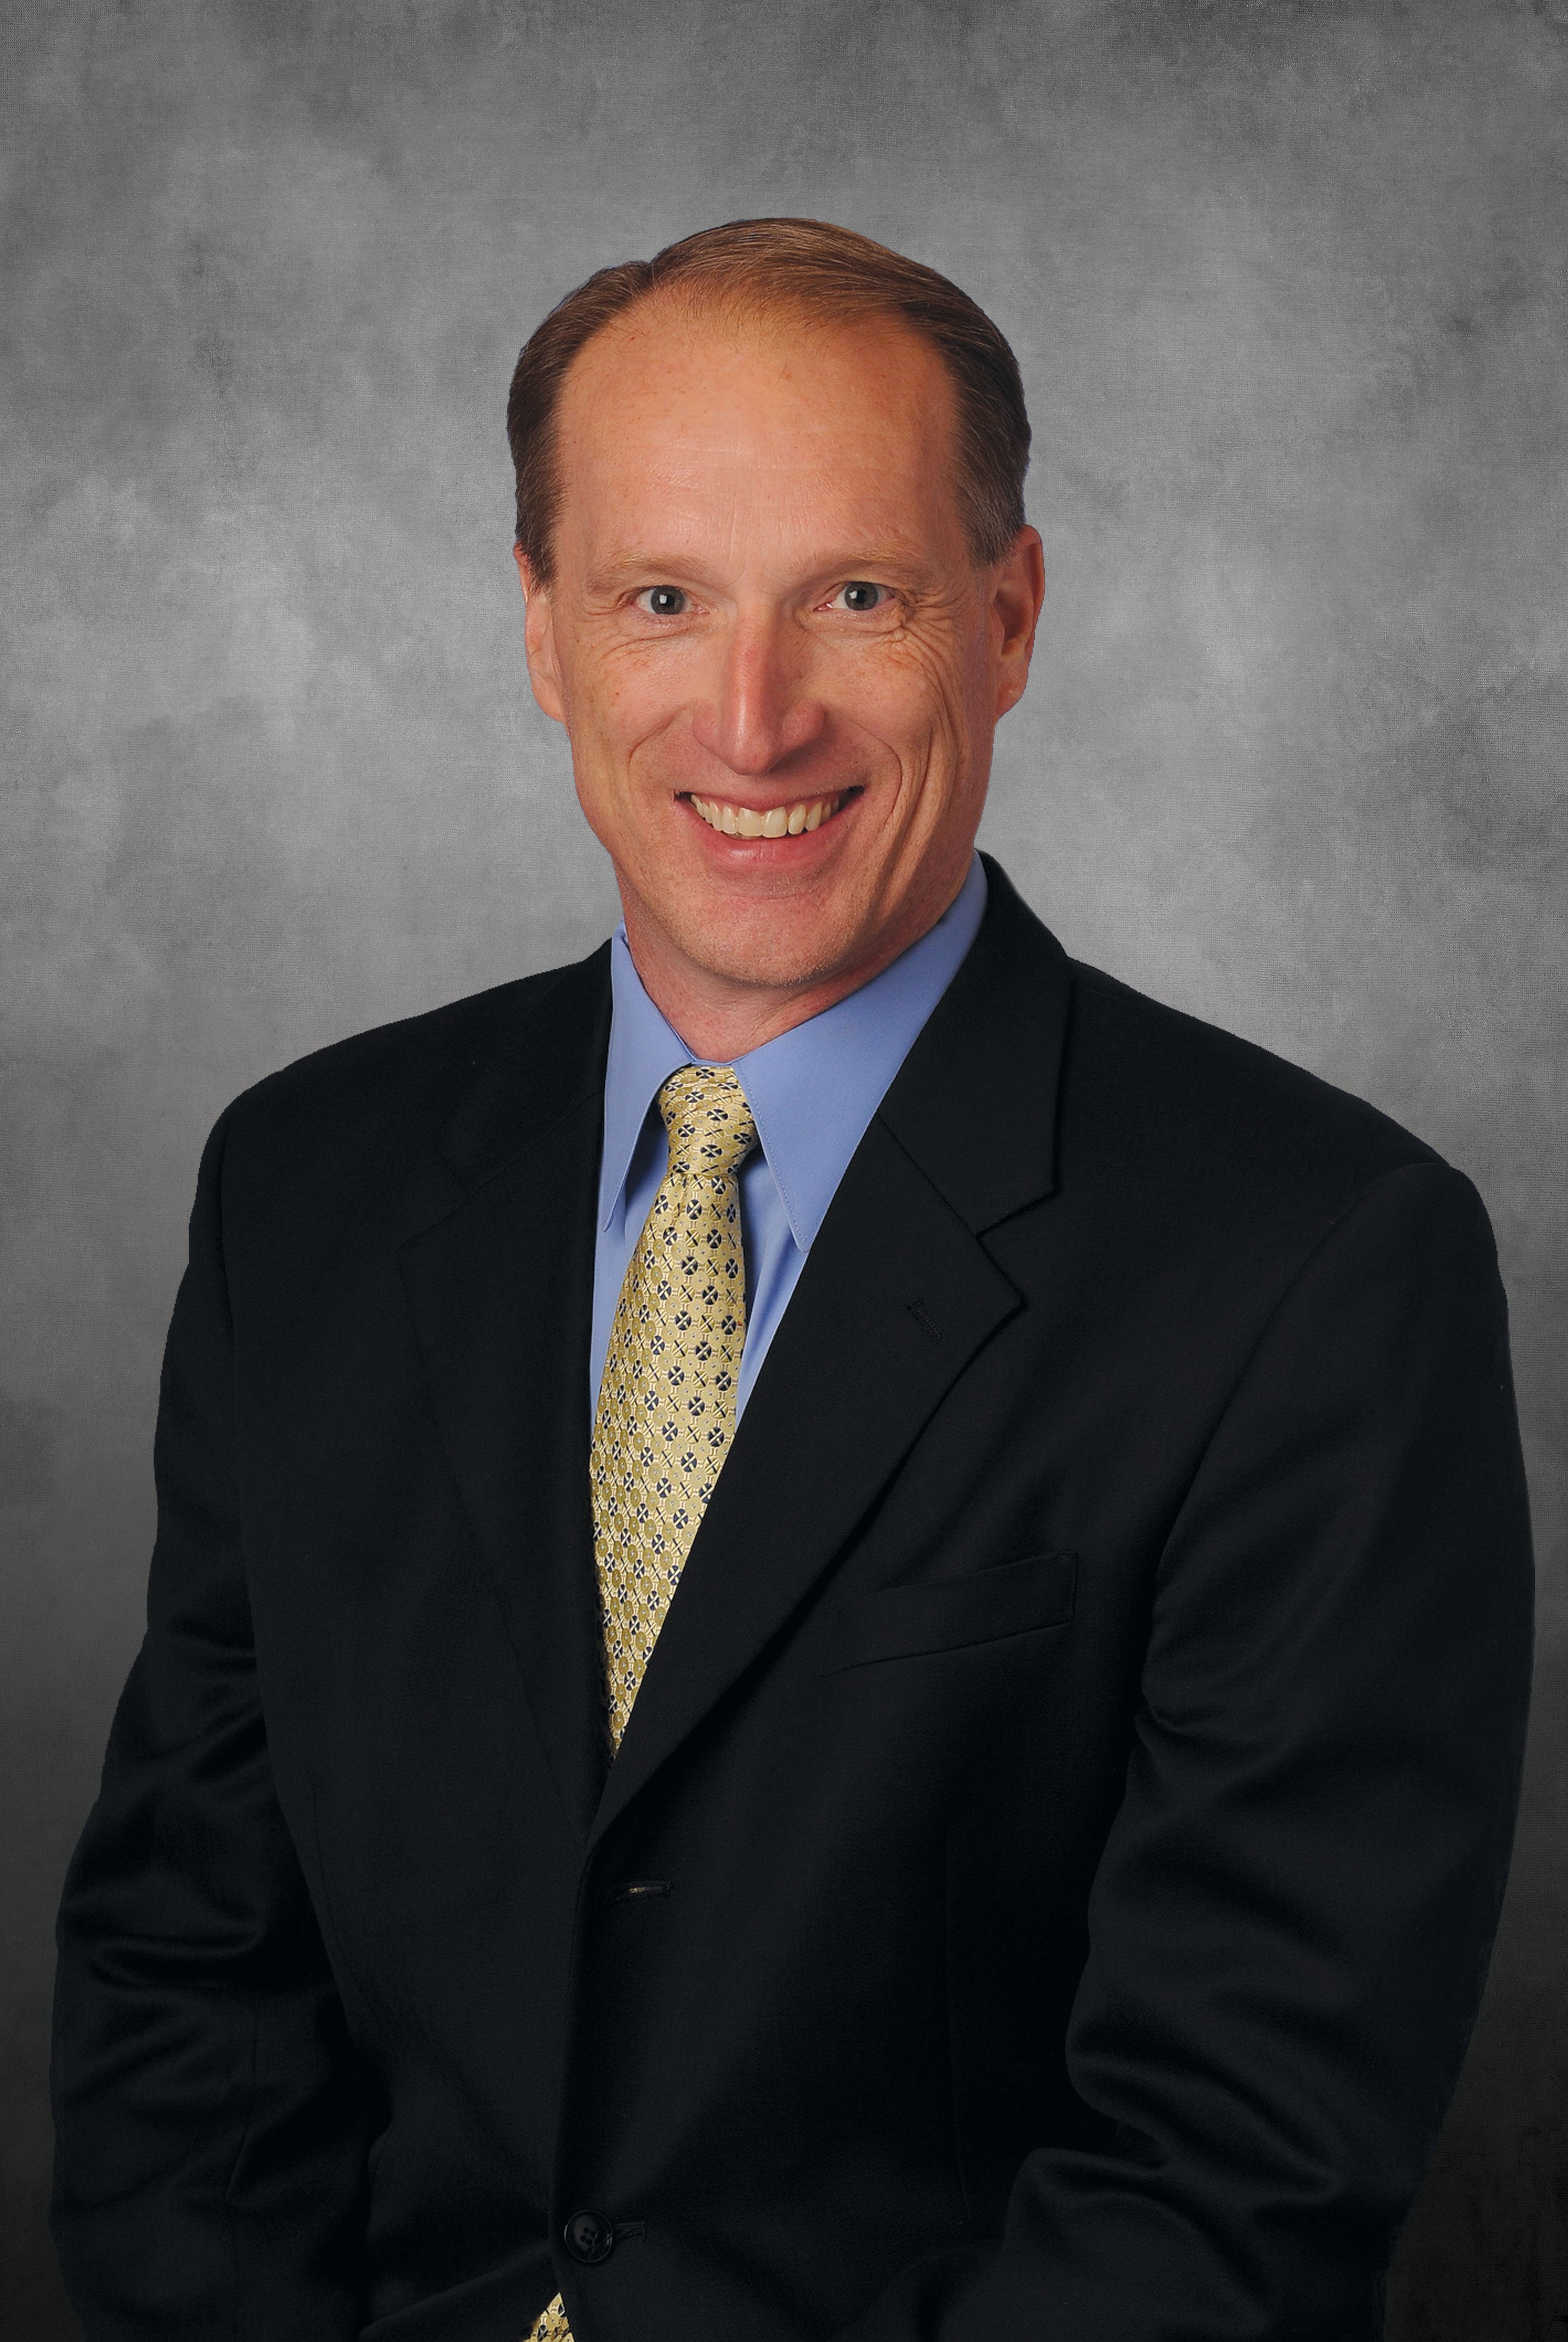 Chevron Phillips Chemical names Mitch Eichelberger senior vice president, corporate planning & technology